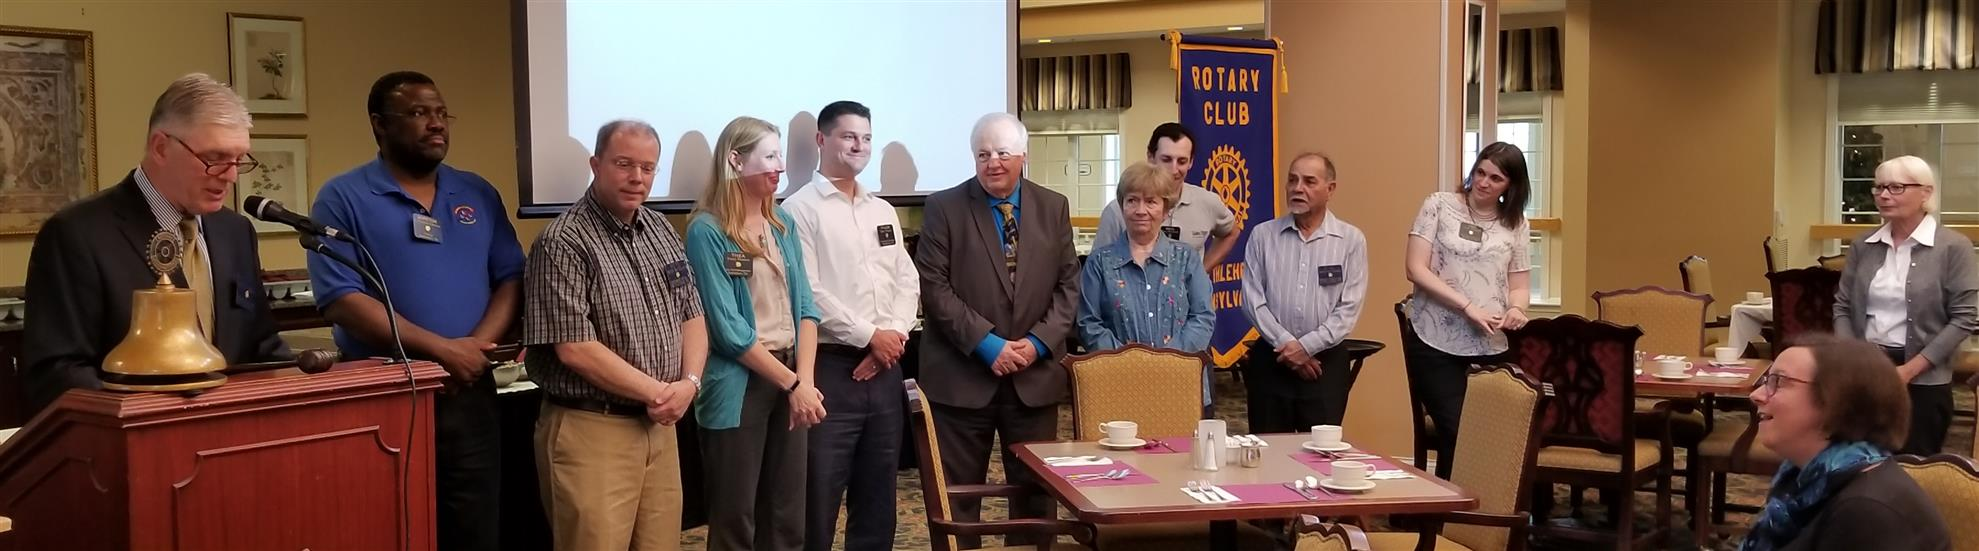 NEW OFFICERS & BOARD TAKE OATHS FOR 2018-19 YEAR